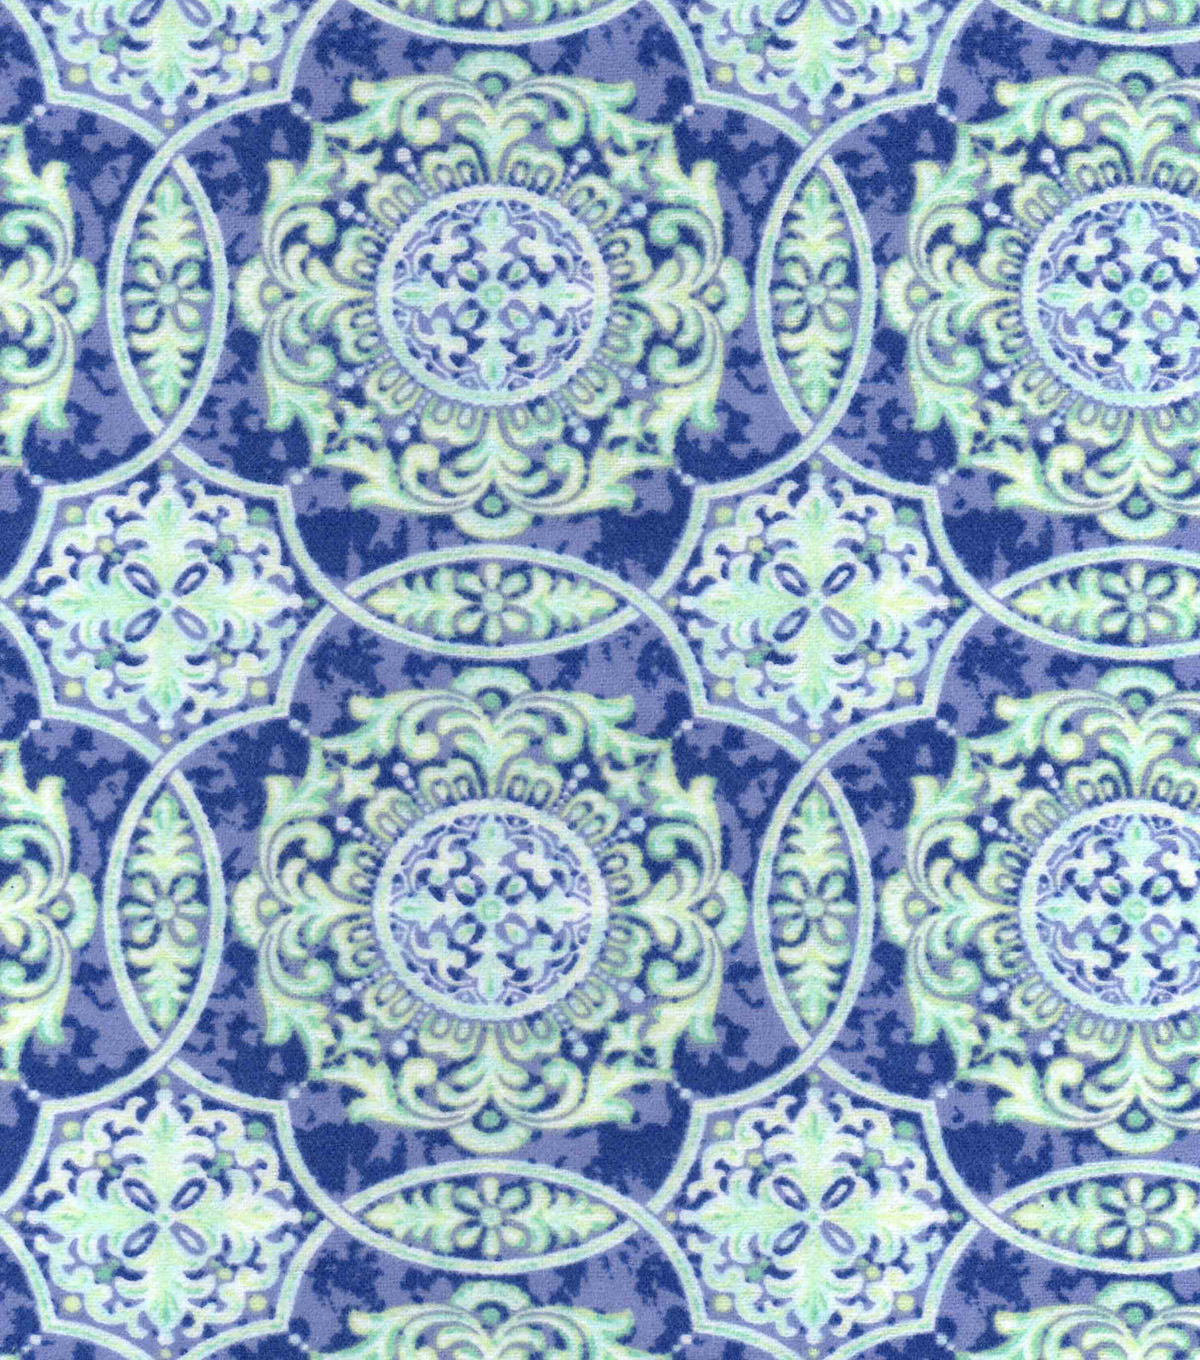 Snuggle Flannel Fabric -Blue Green Medallions